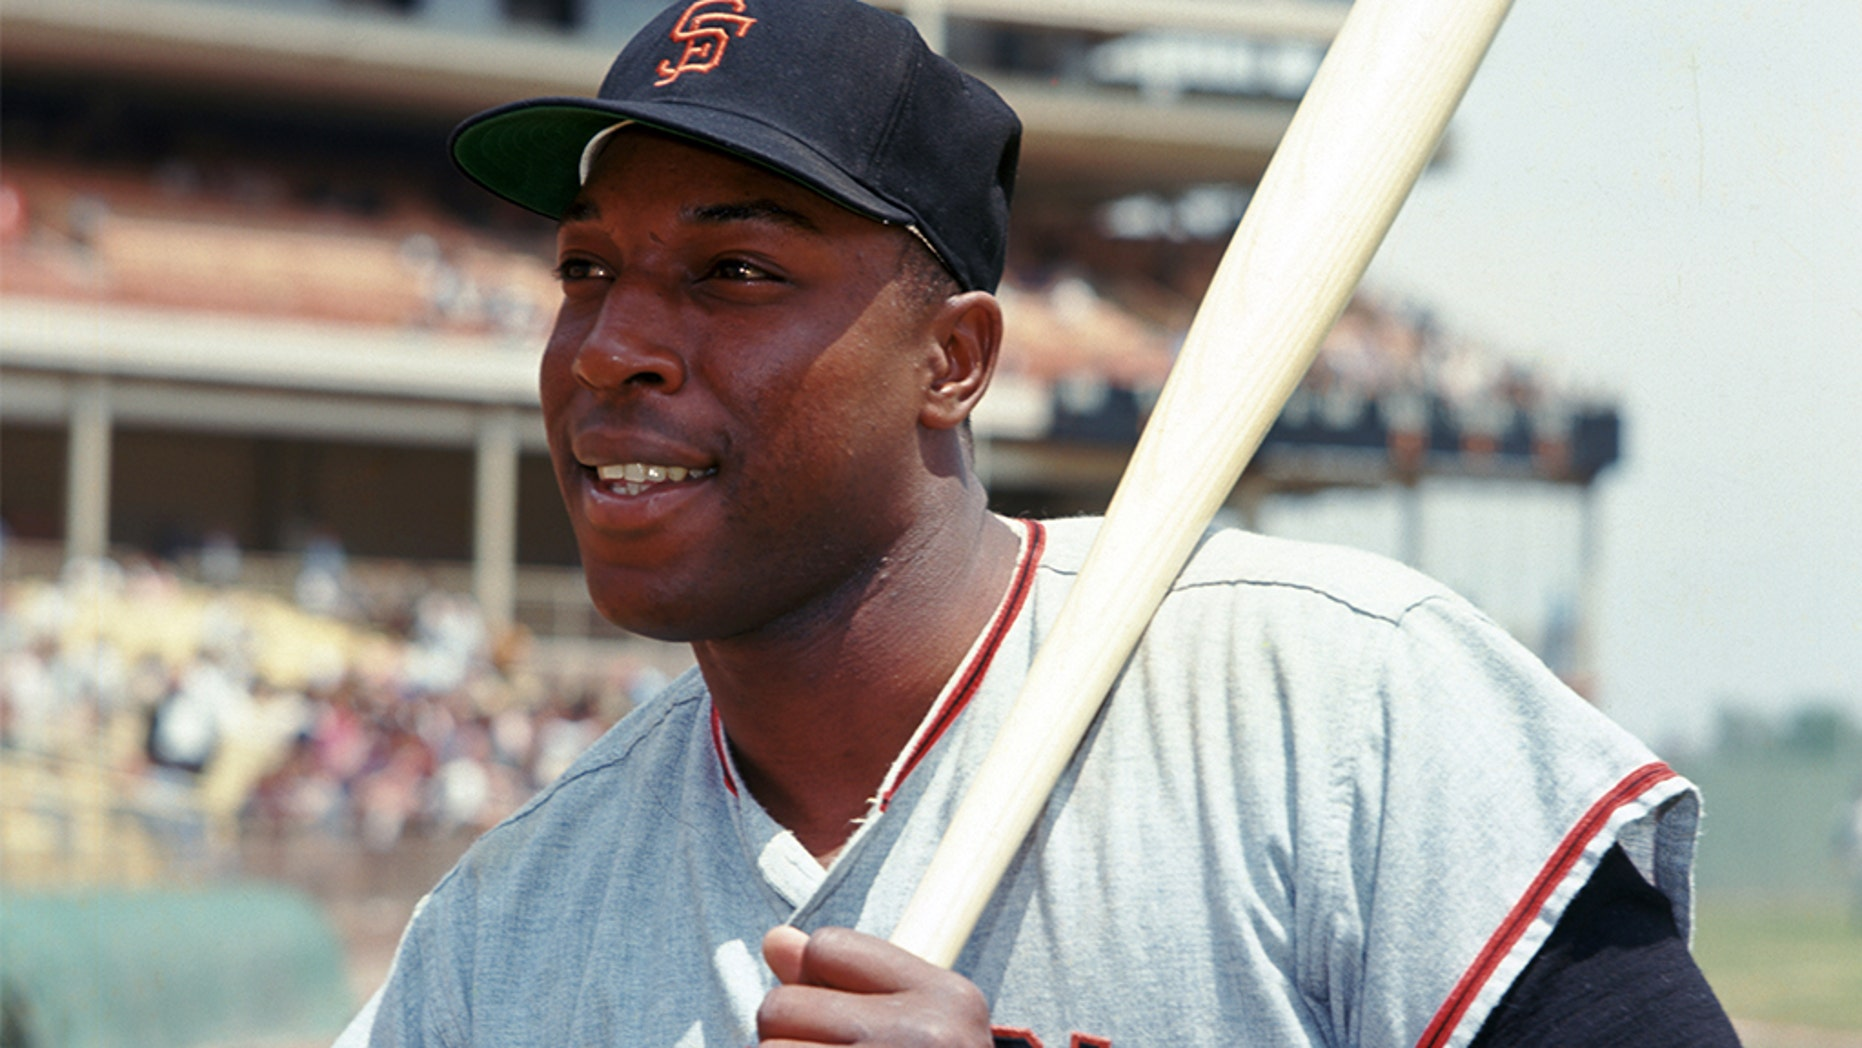 Hall of Famer Willie McCovey remembered for awesome power, hitting skill